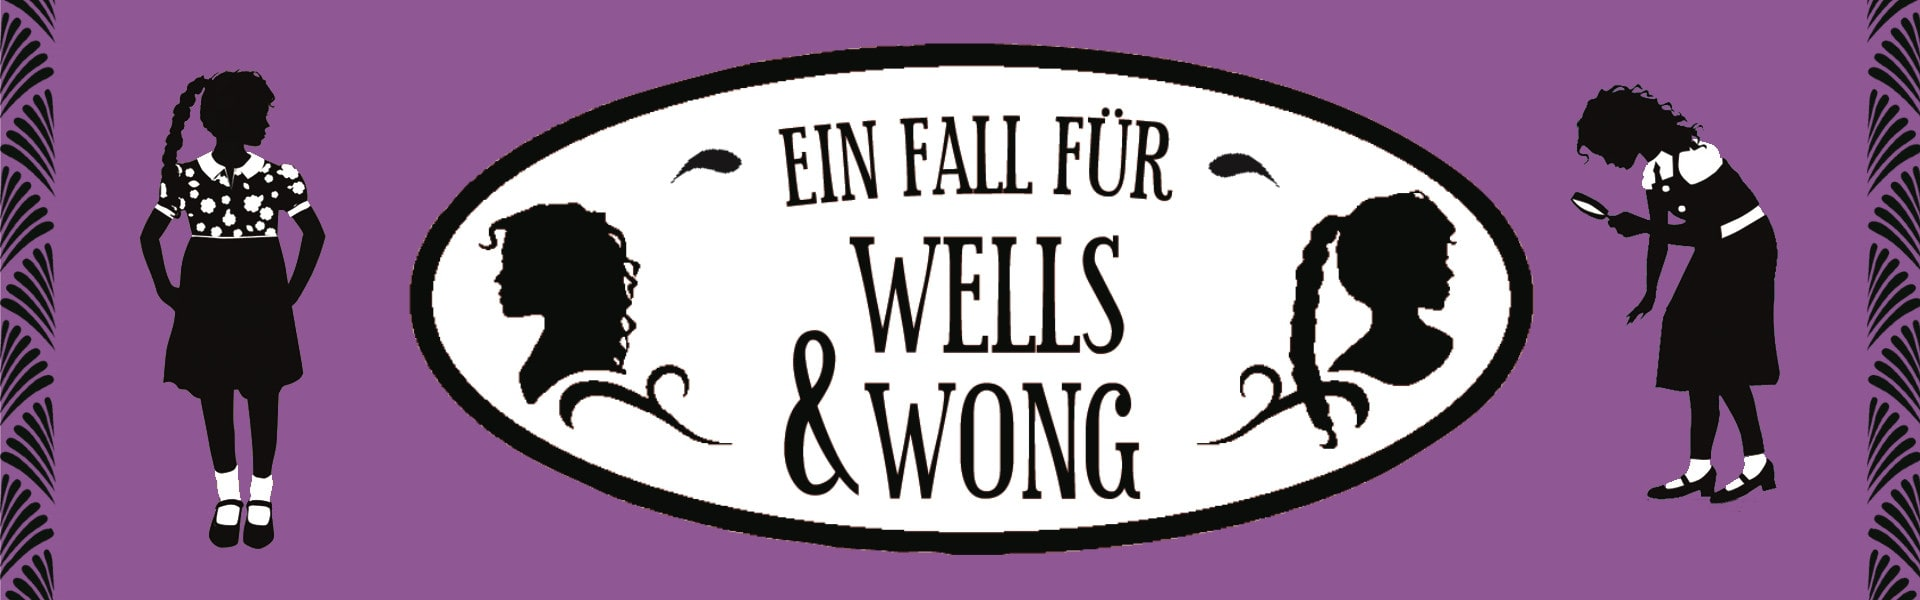 Einf All für Wells&Wong